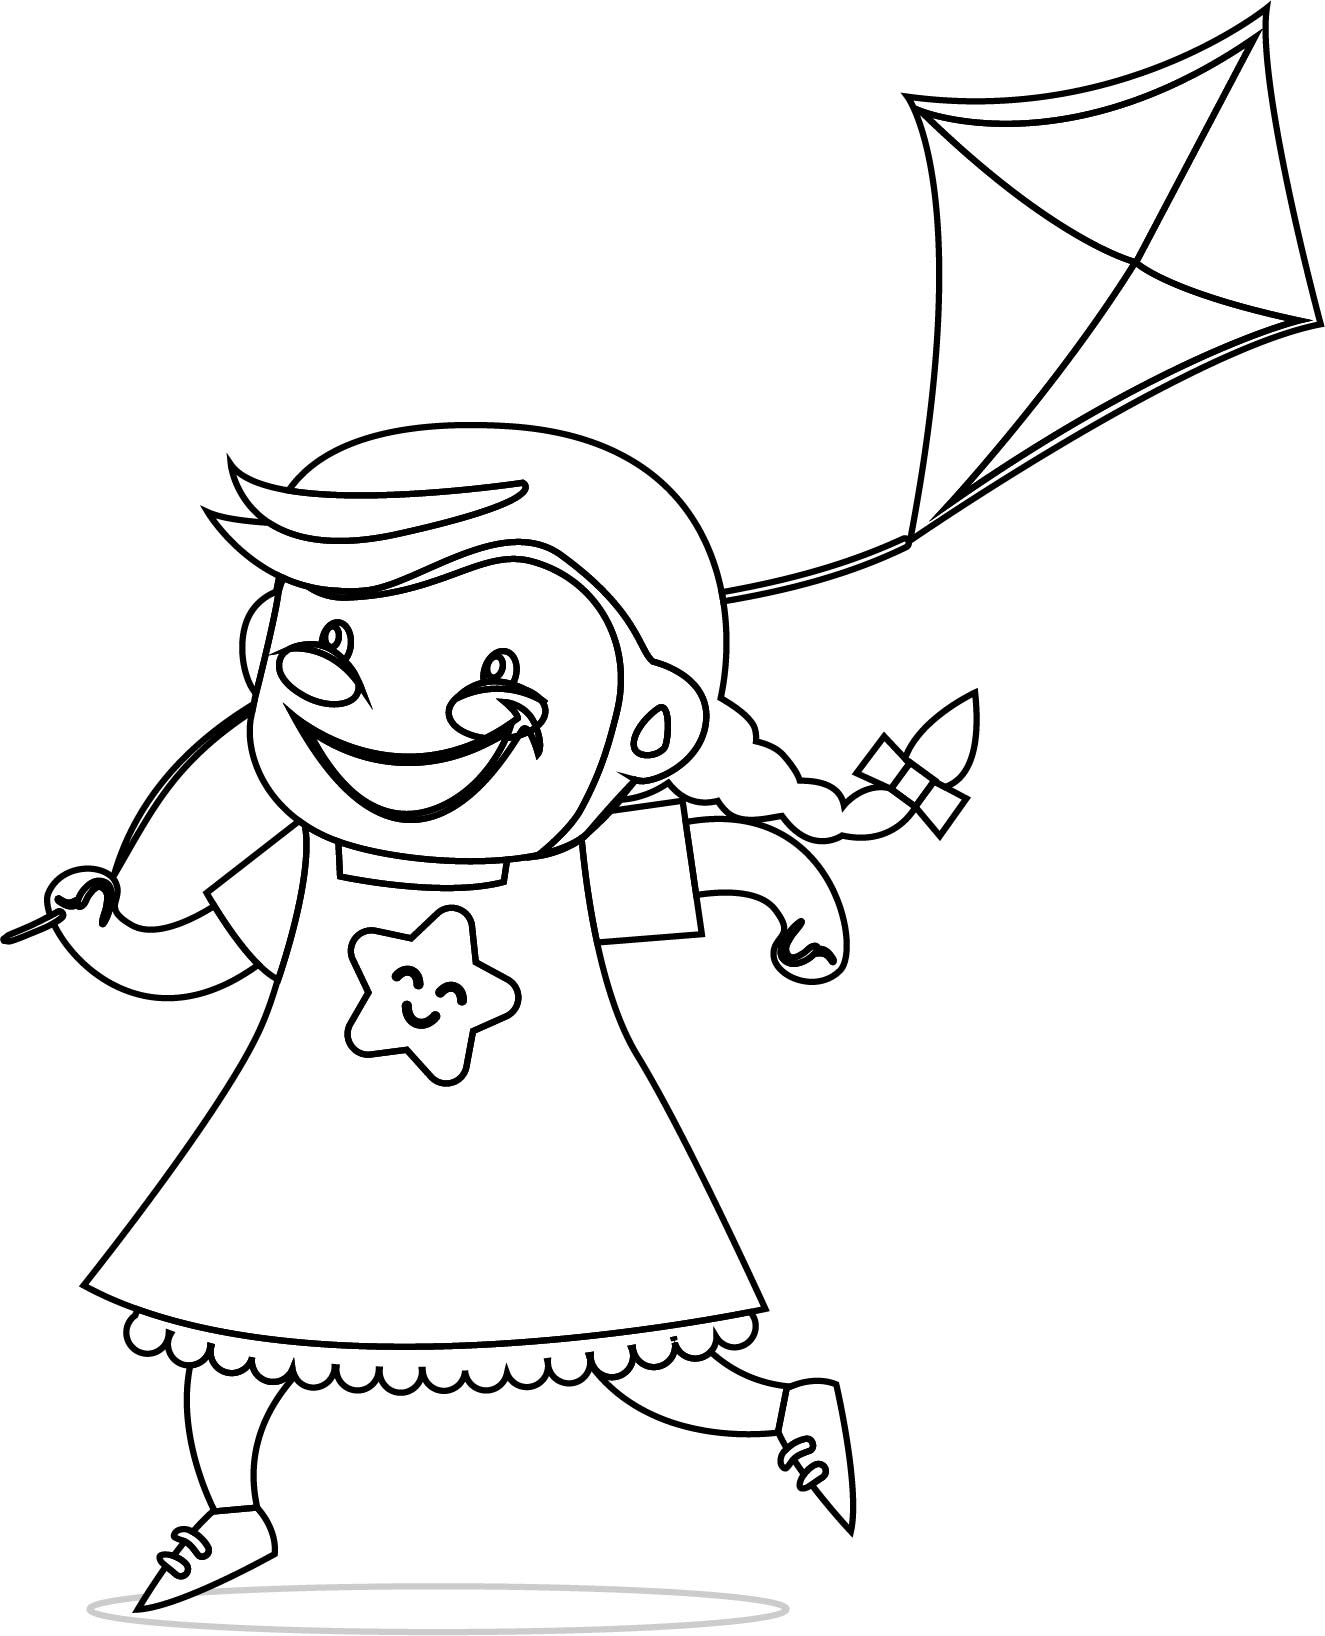 Children Kite Coloring Page